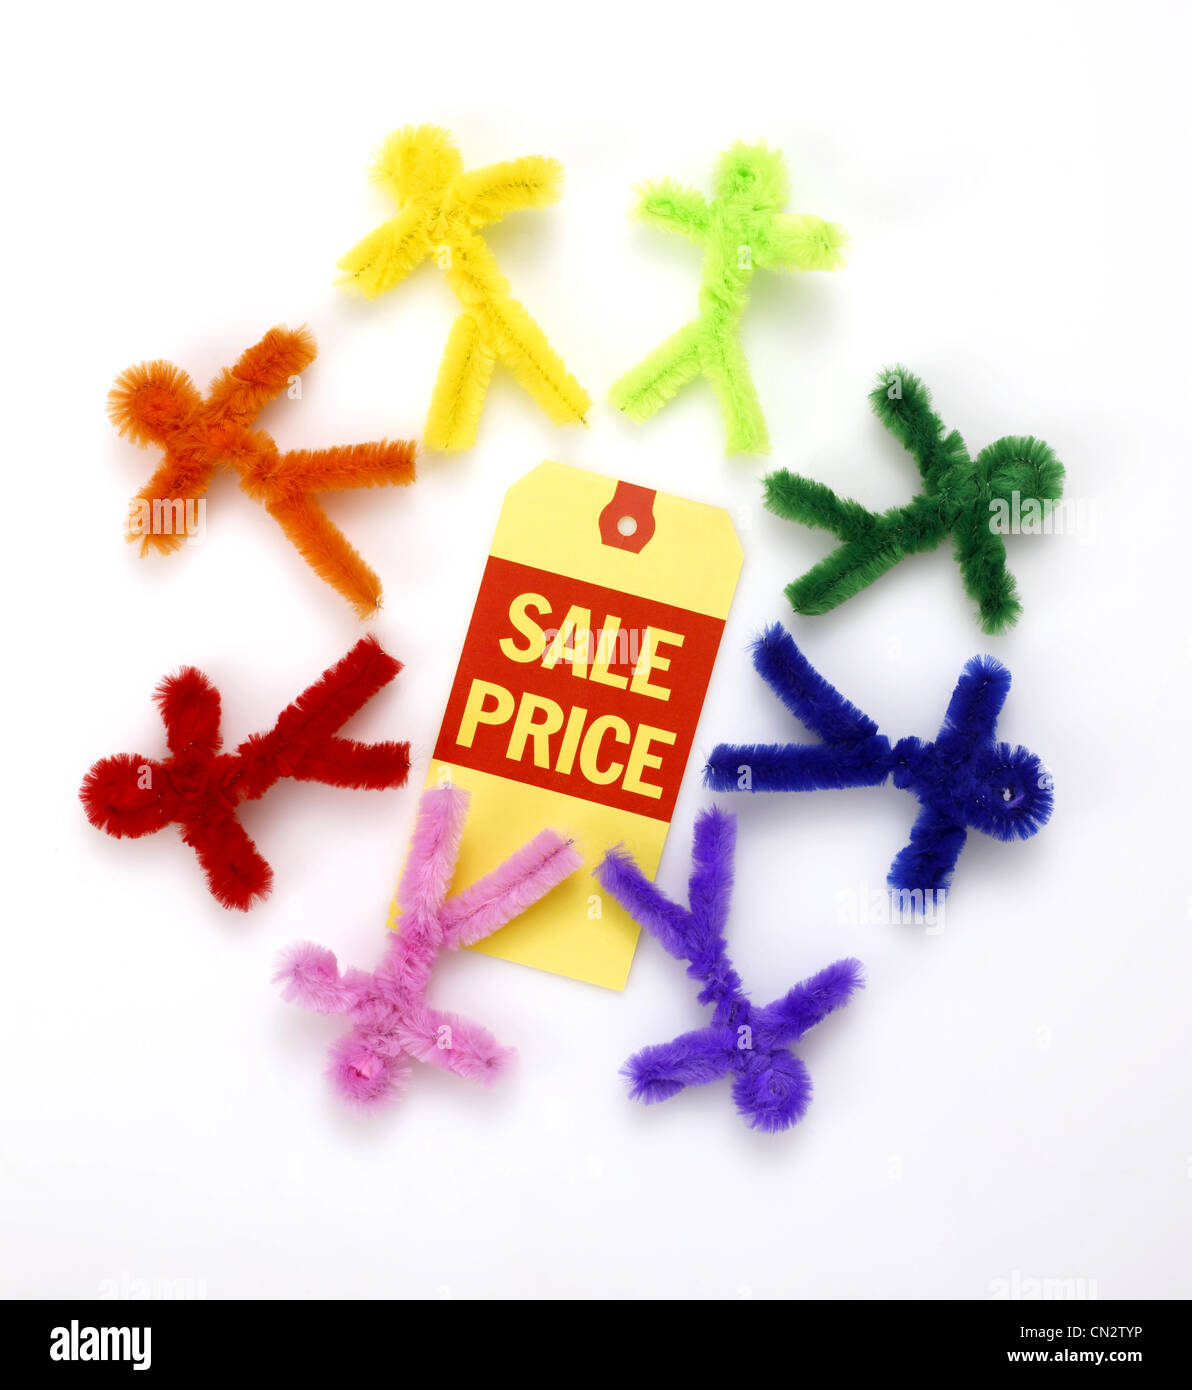 Sale Price Tag With Colorful Figures Made From Chenille Pipe Cleaners - Stock Image